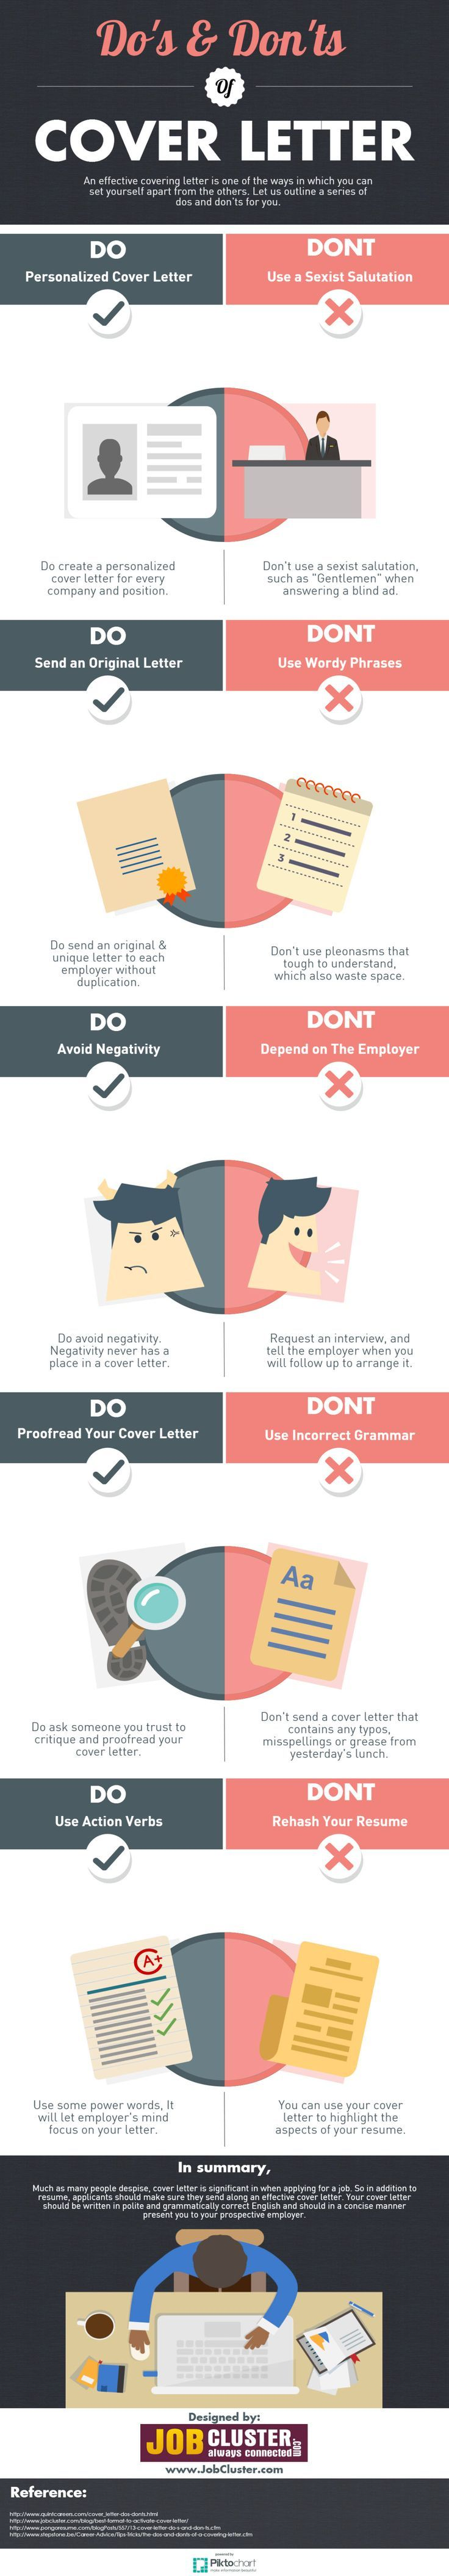 How To Make A Resume Free Pdf  Best Polish Your Resume Images On Pinterest  Resume Tips  Resume Font Pdf with Letter Of Introduction For Resume Pdf Check Out This Special Infographic That Outlines The Dos And Donts For  Any Sincere Job Seeker And Avoid The Cover Letter Pitfalls Firsthand Sample Cna Resume